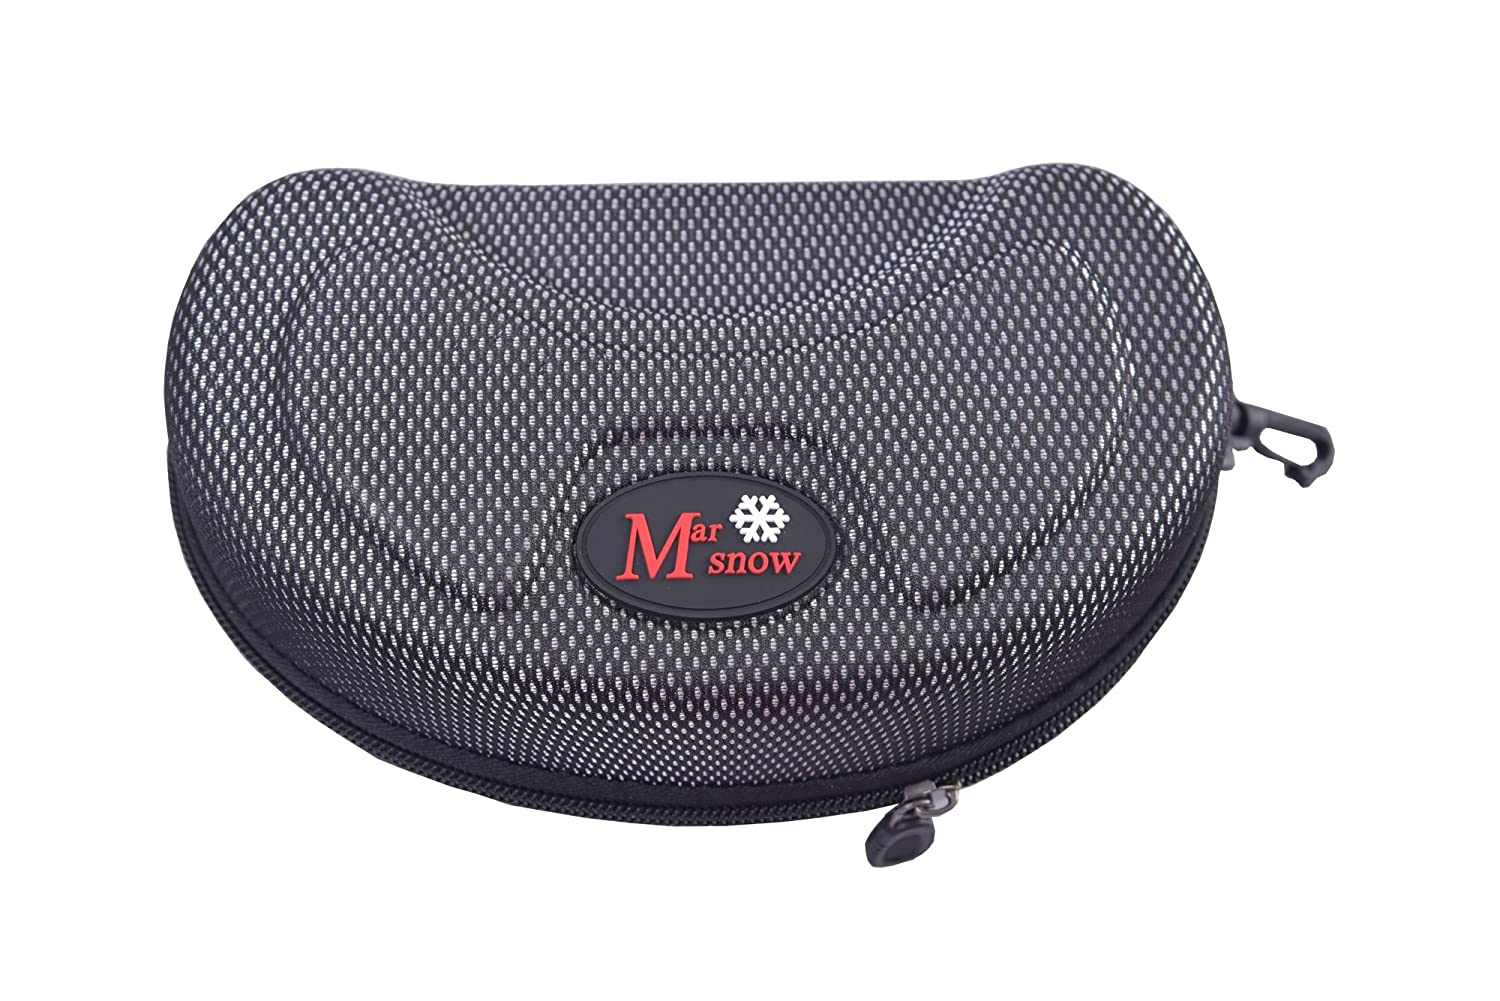 4c02a4ca87 Black Ski Goggle Case Hard Protective Carrying Case  Amazon.co.uk  Sports    Outdoors